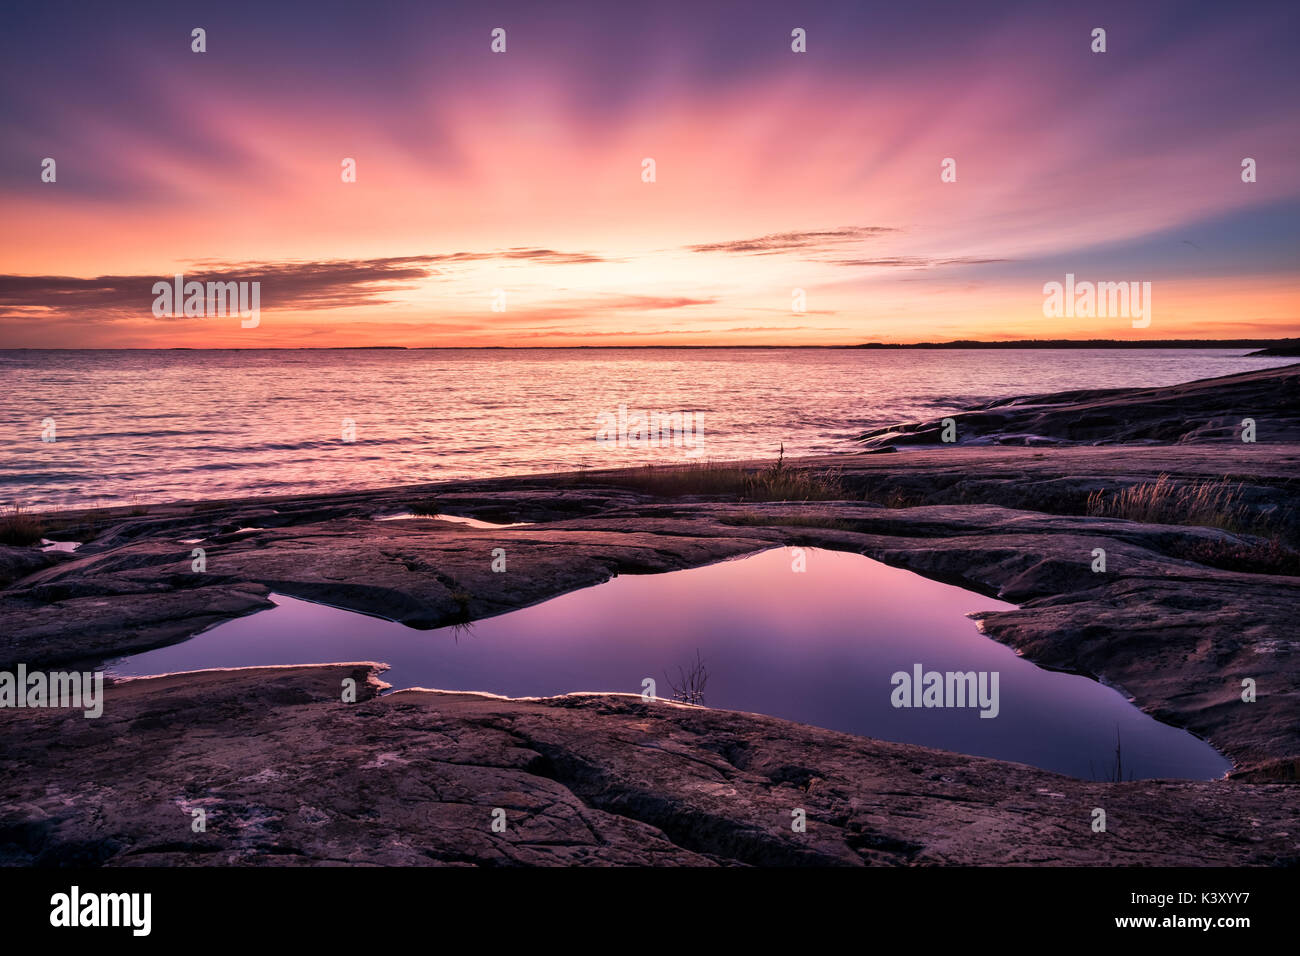 Epic sunset with beautiful color and sea at autumn evening in Porkkalanniemi, Finland - Stock Image